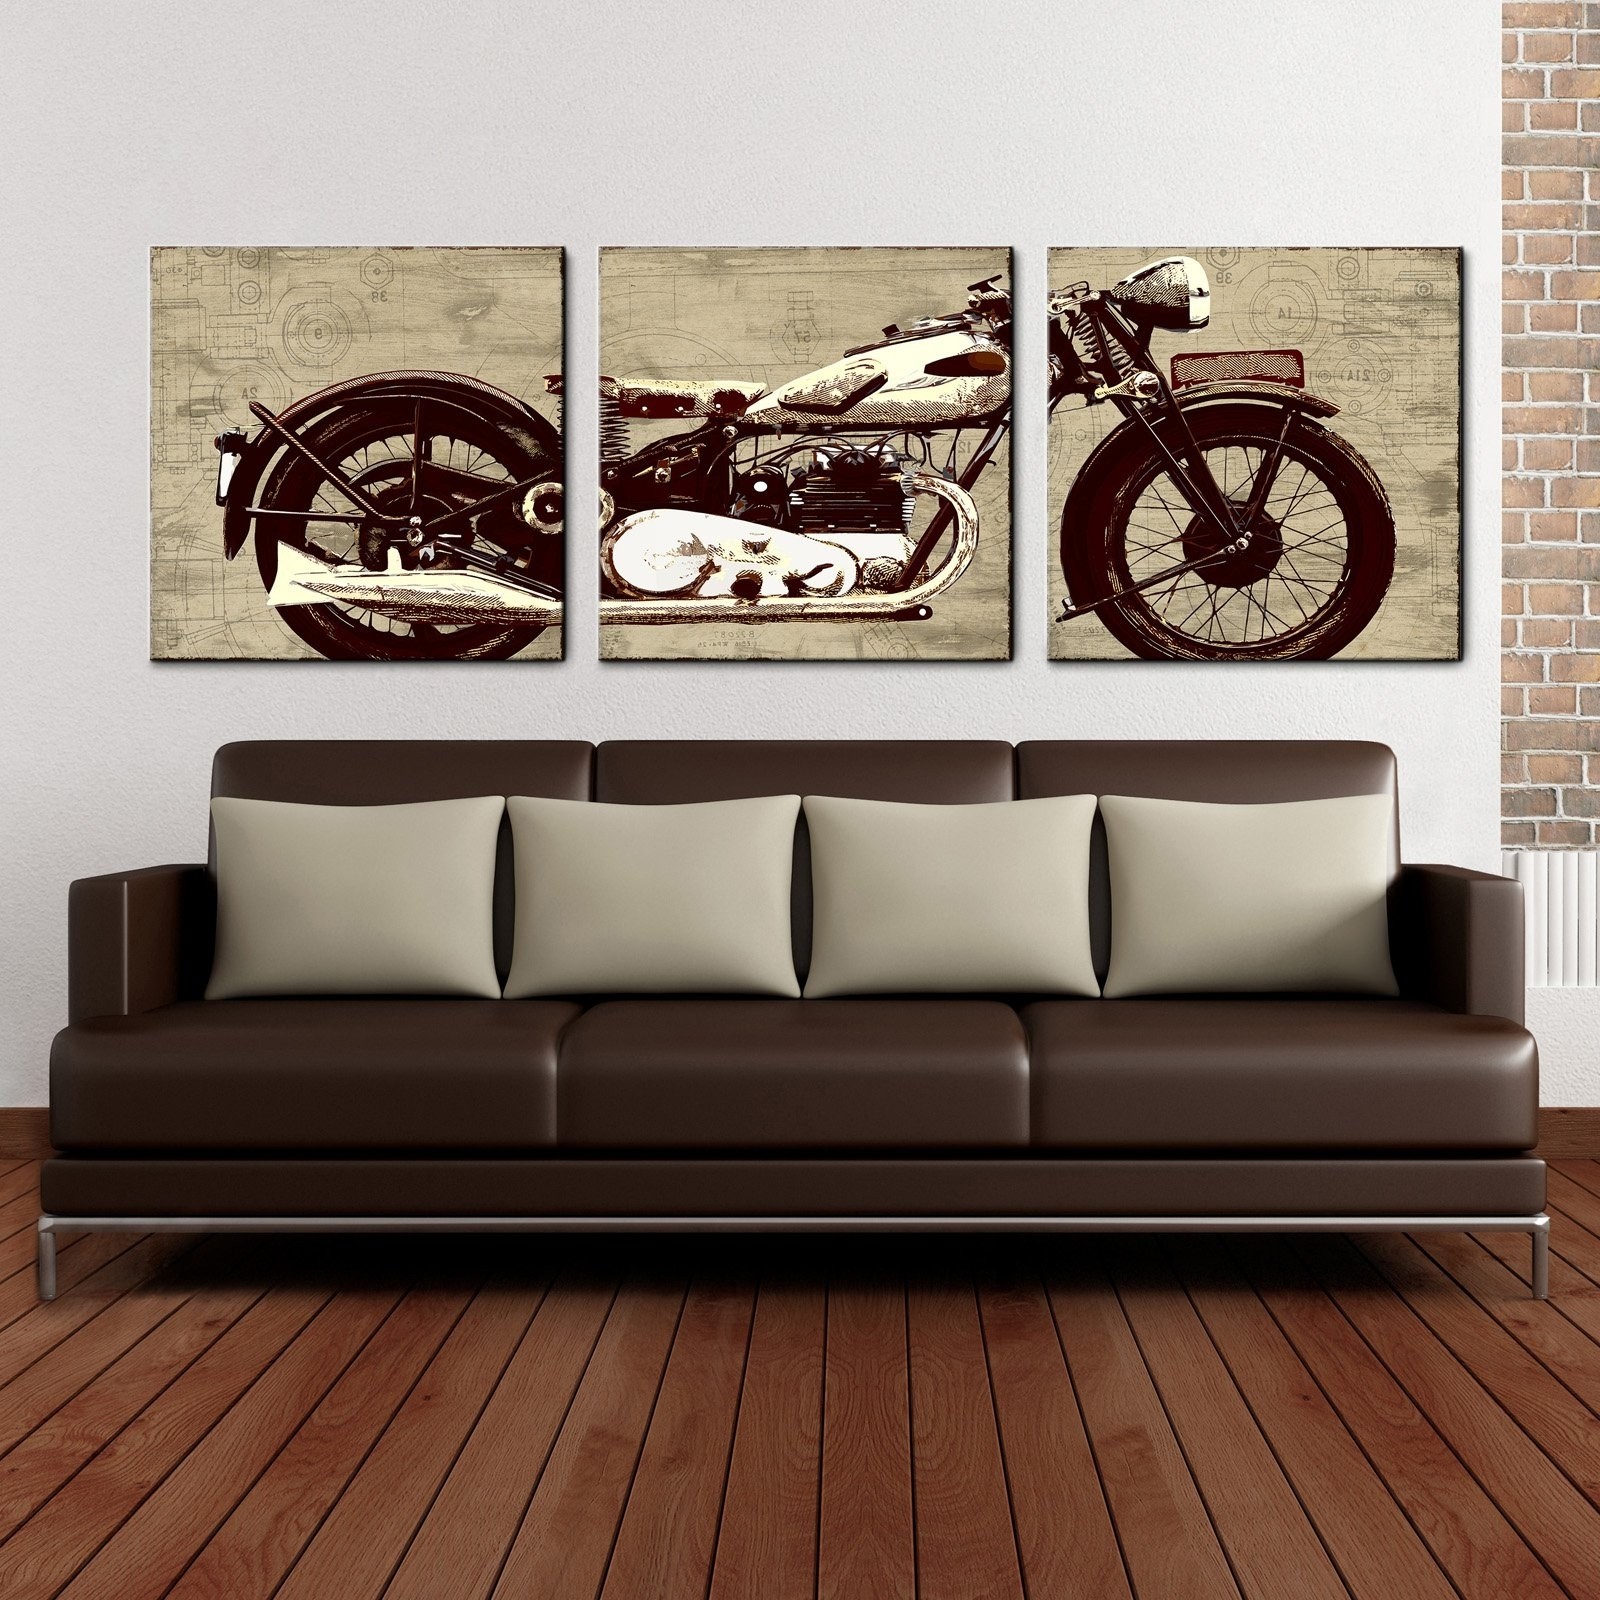 Motorcycle Wall Art Inside Best And Newest Motorcycle 24 X 72 Canvas Art Print Triptych – Walmart (View 11 of 20)